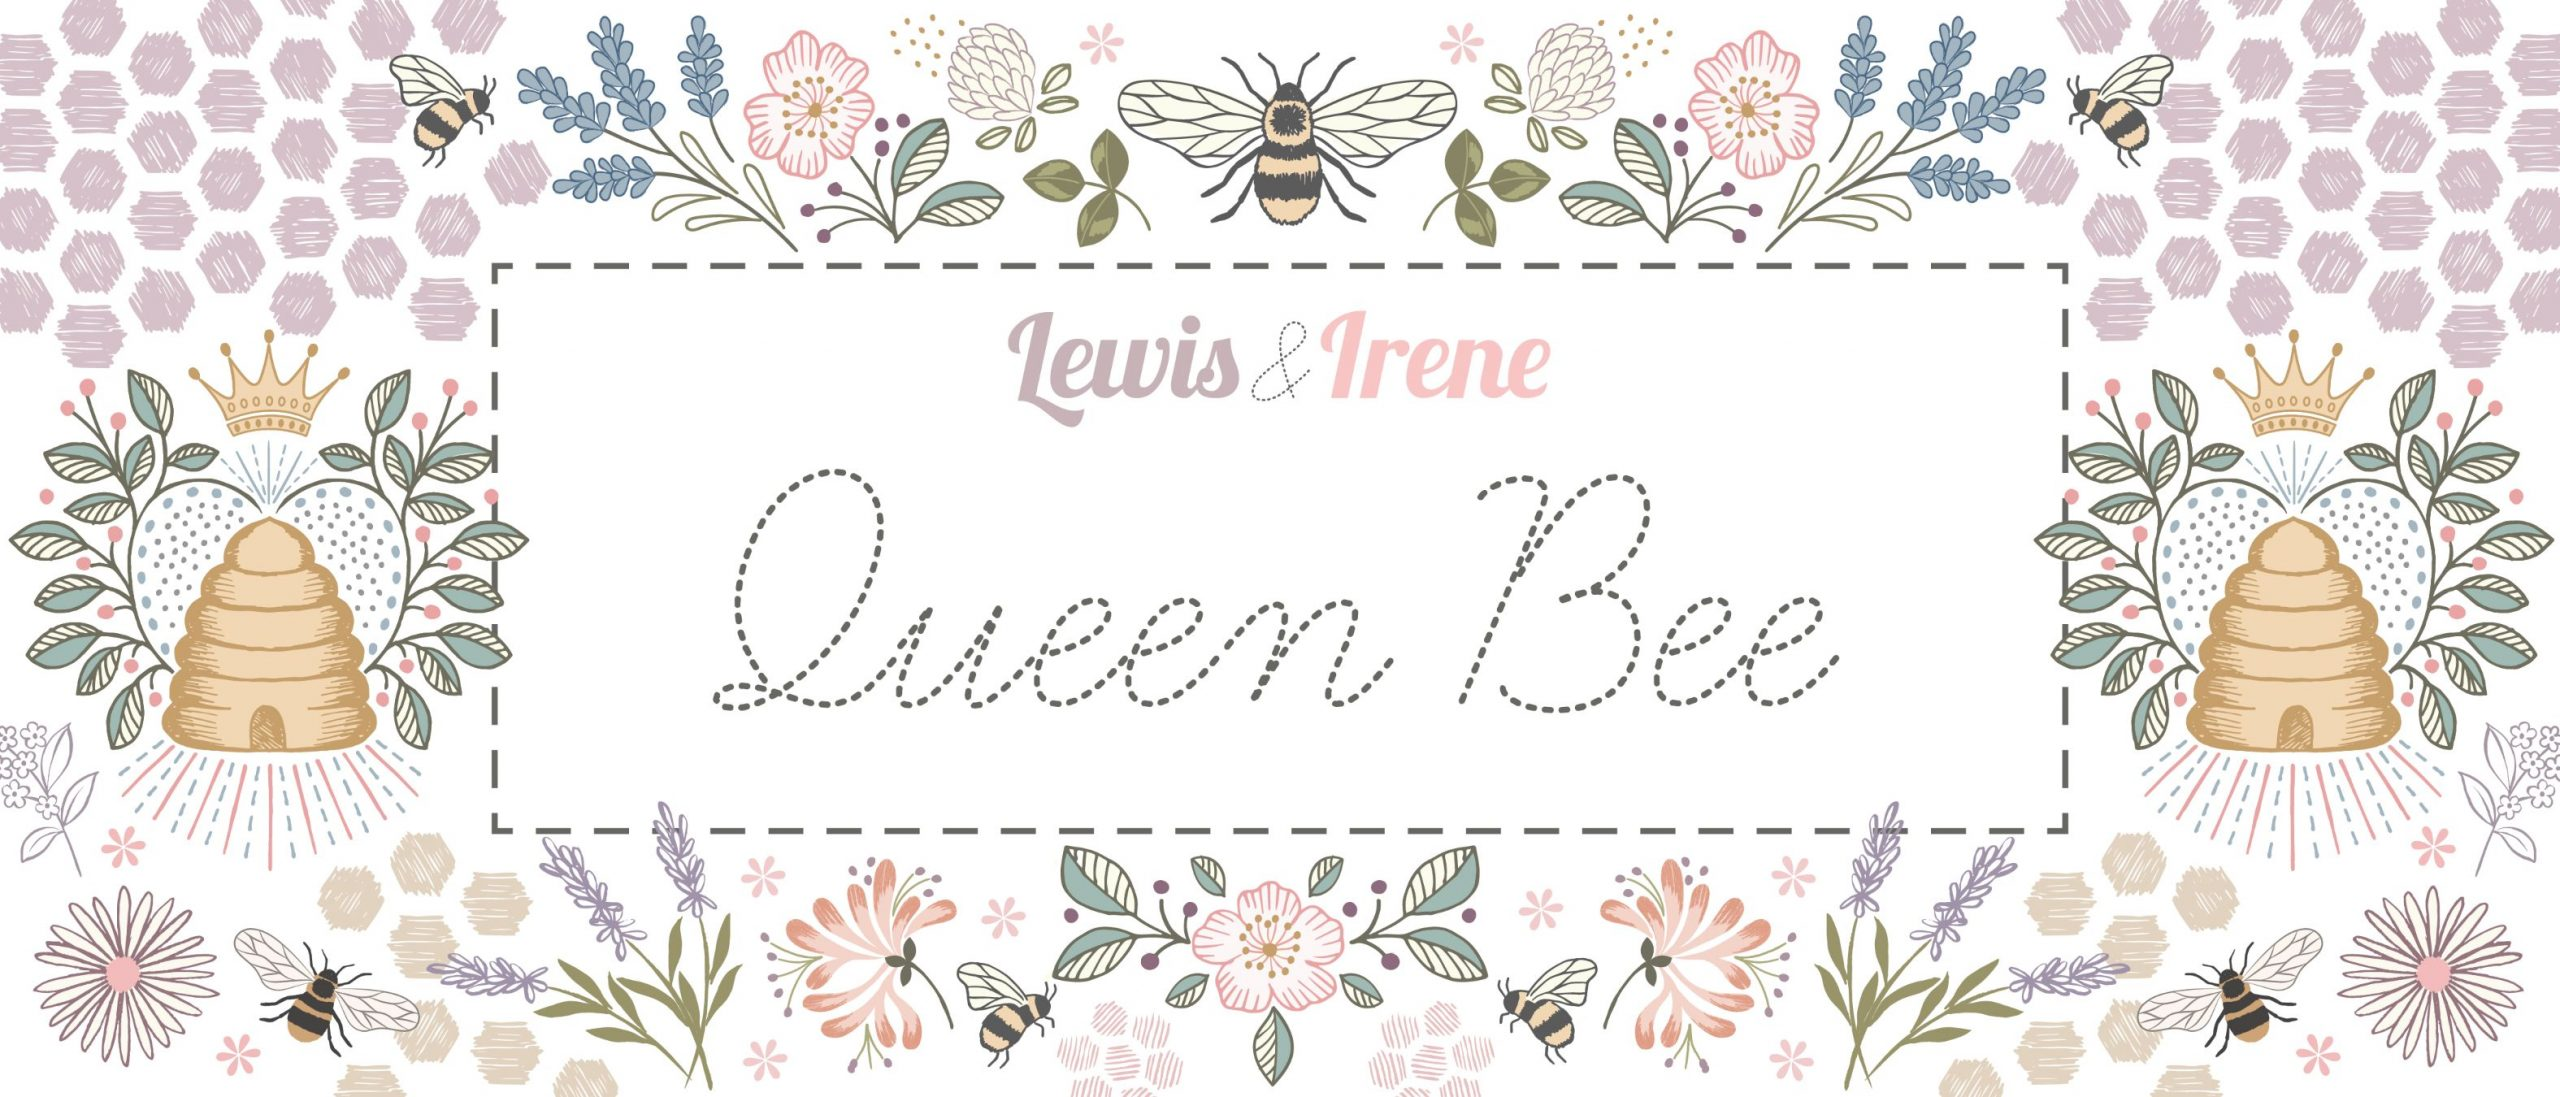 Queen Bee Graphic-01-01